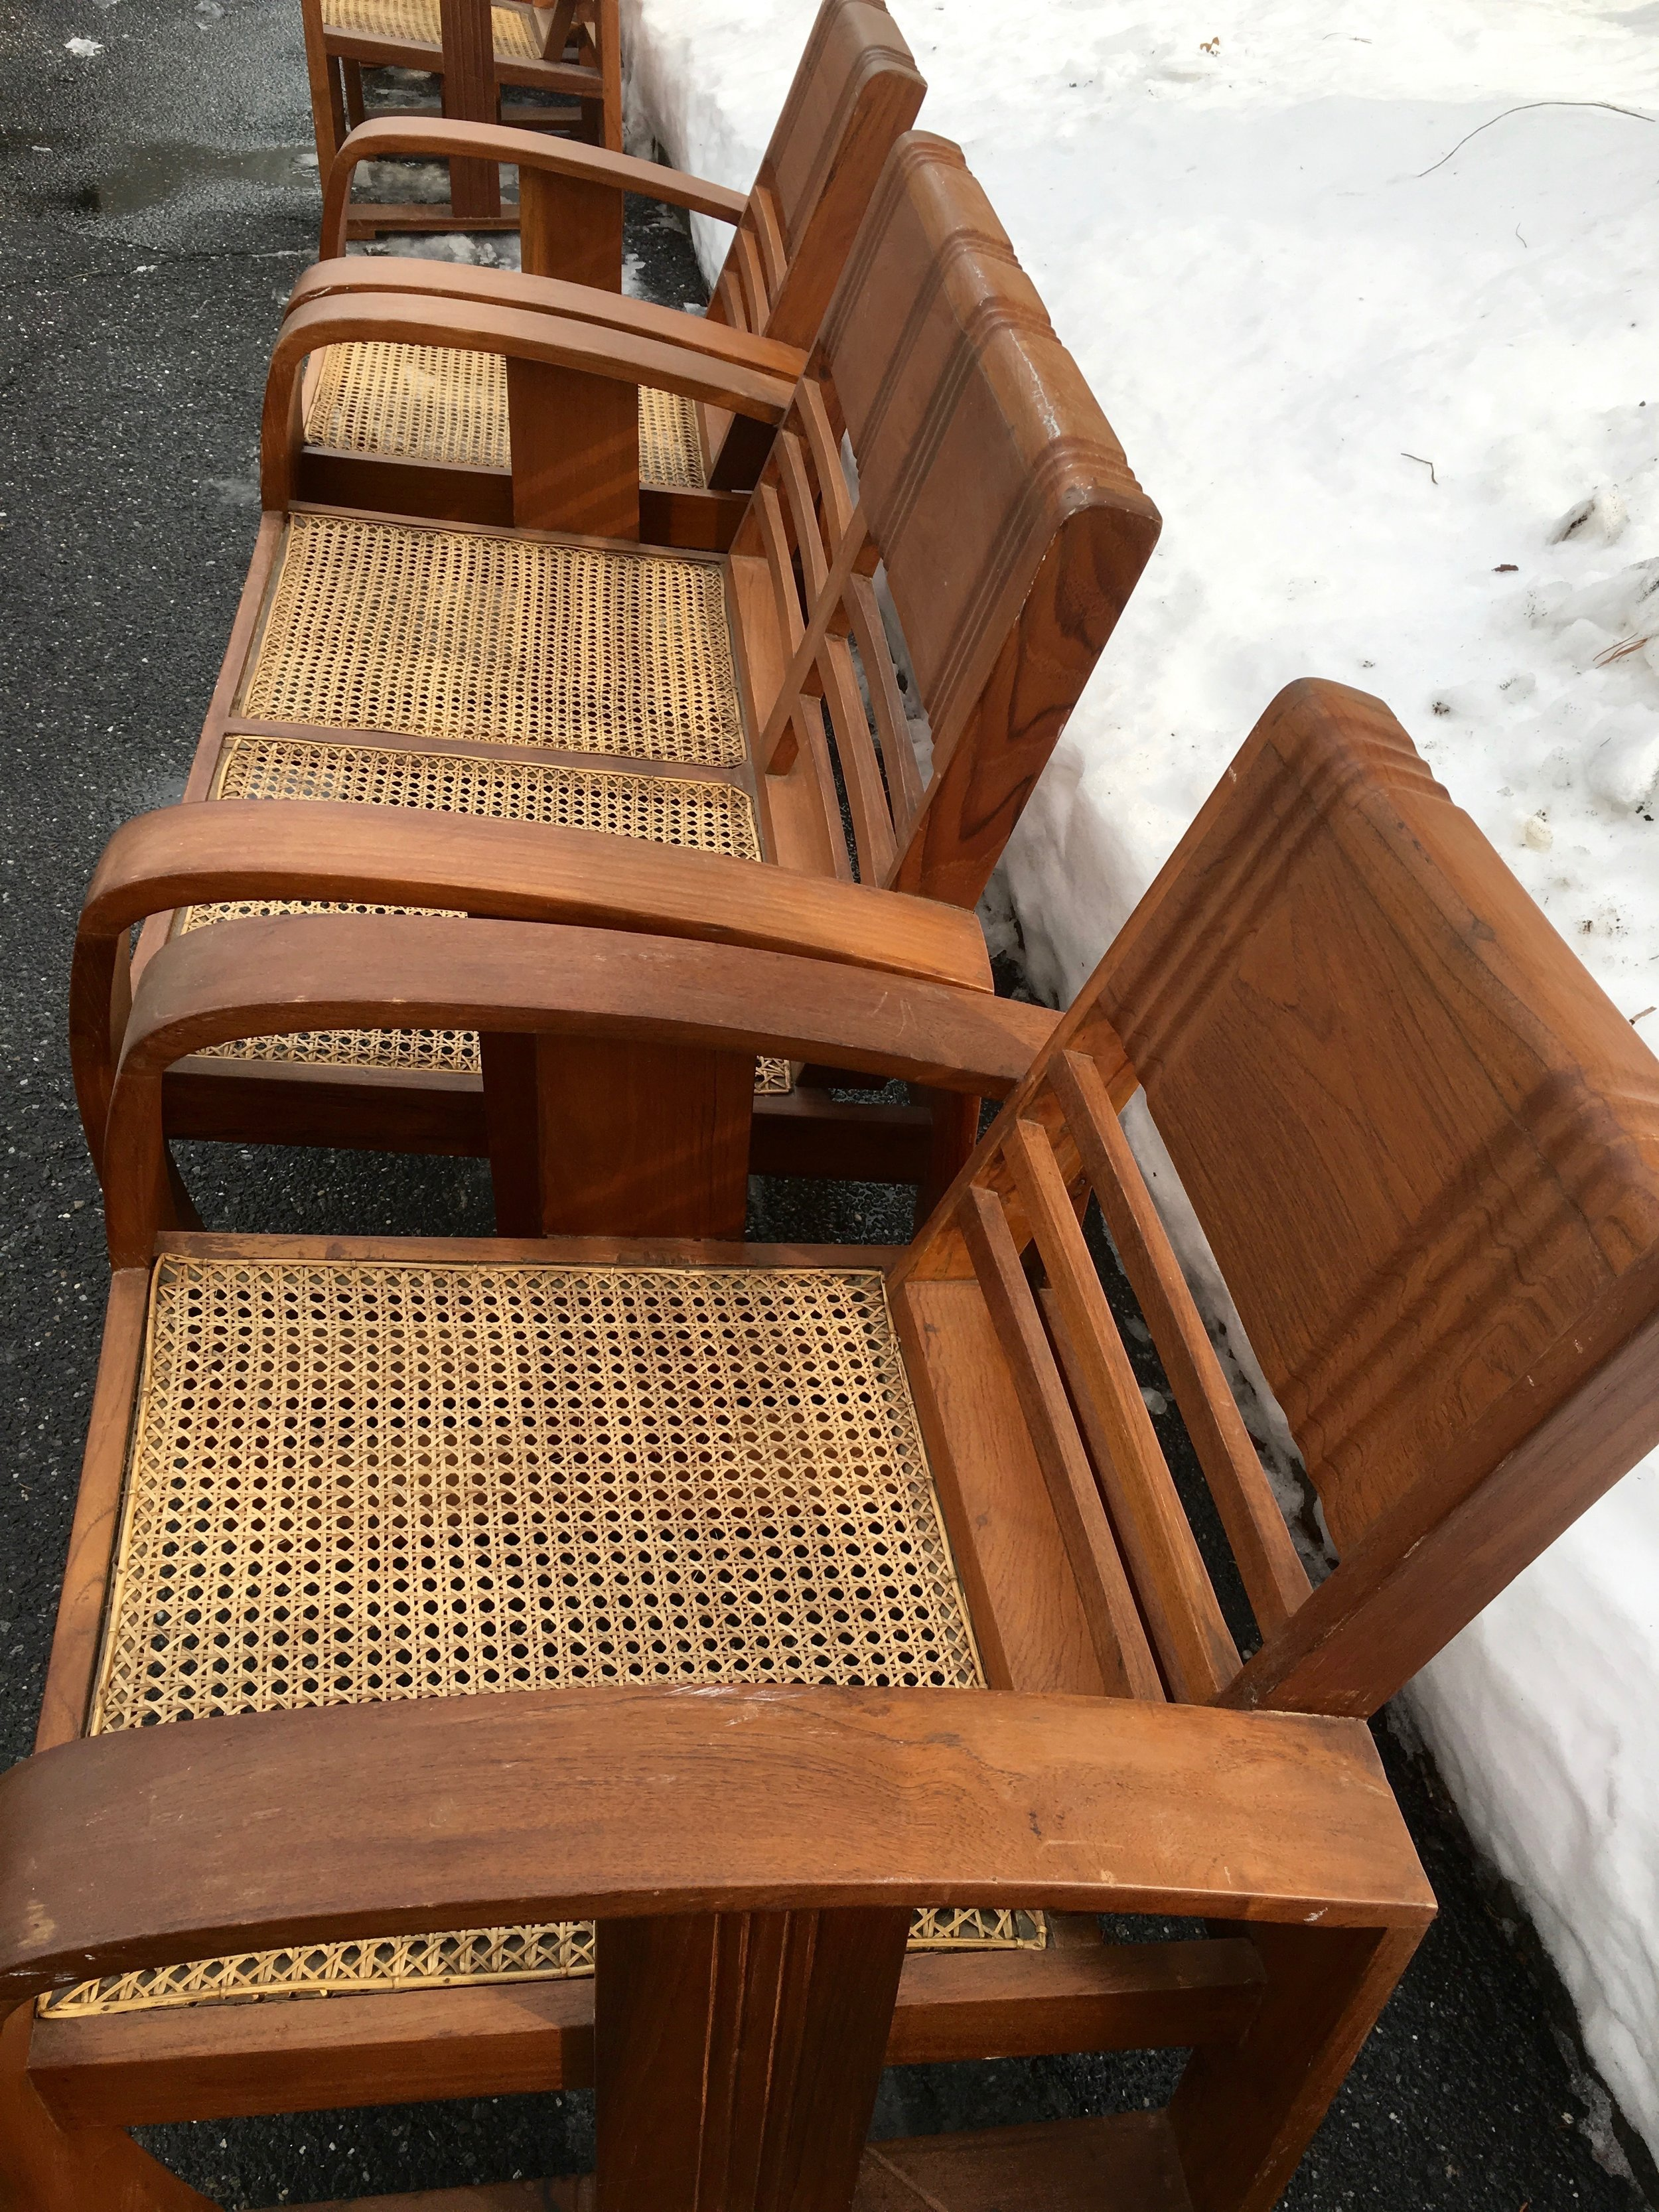 Pair of Anglo-Burmese teak wood chairs and a bench, circa 1930s.